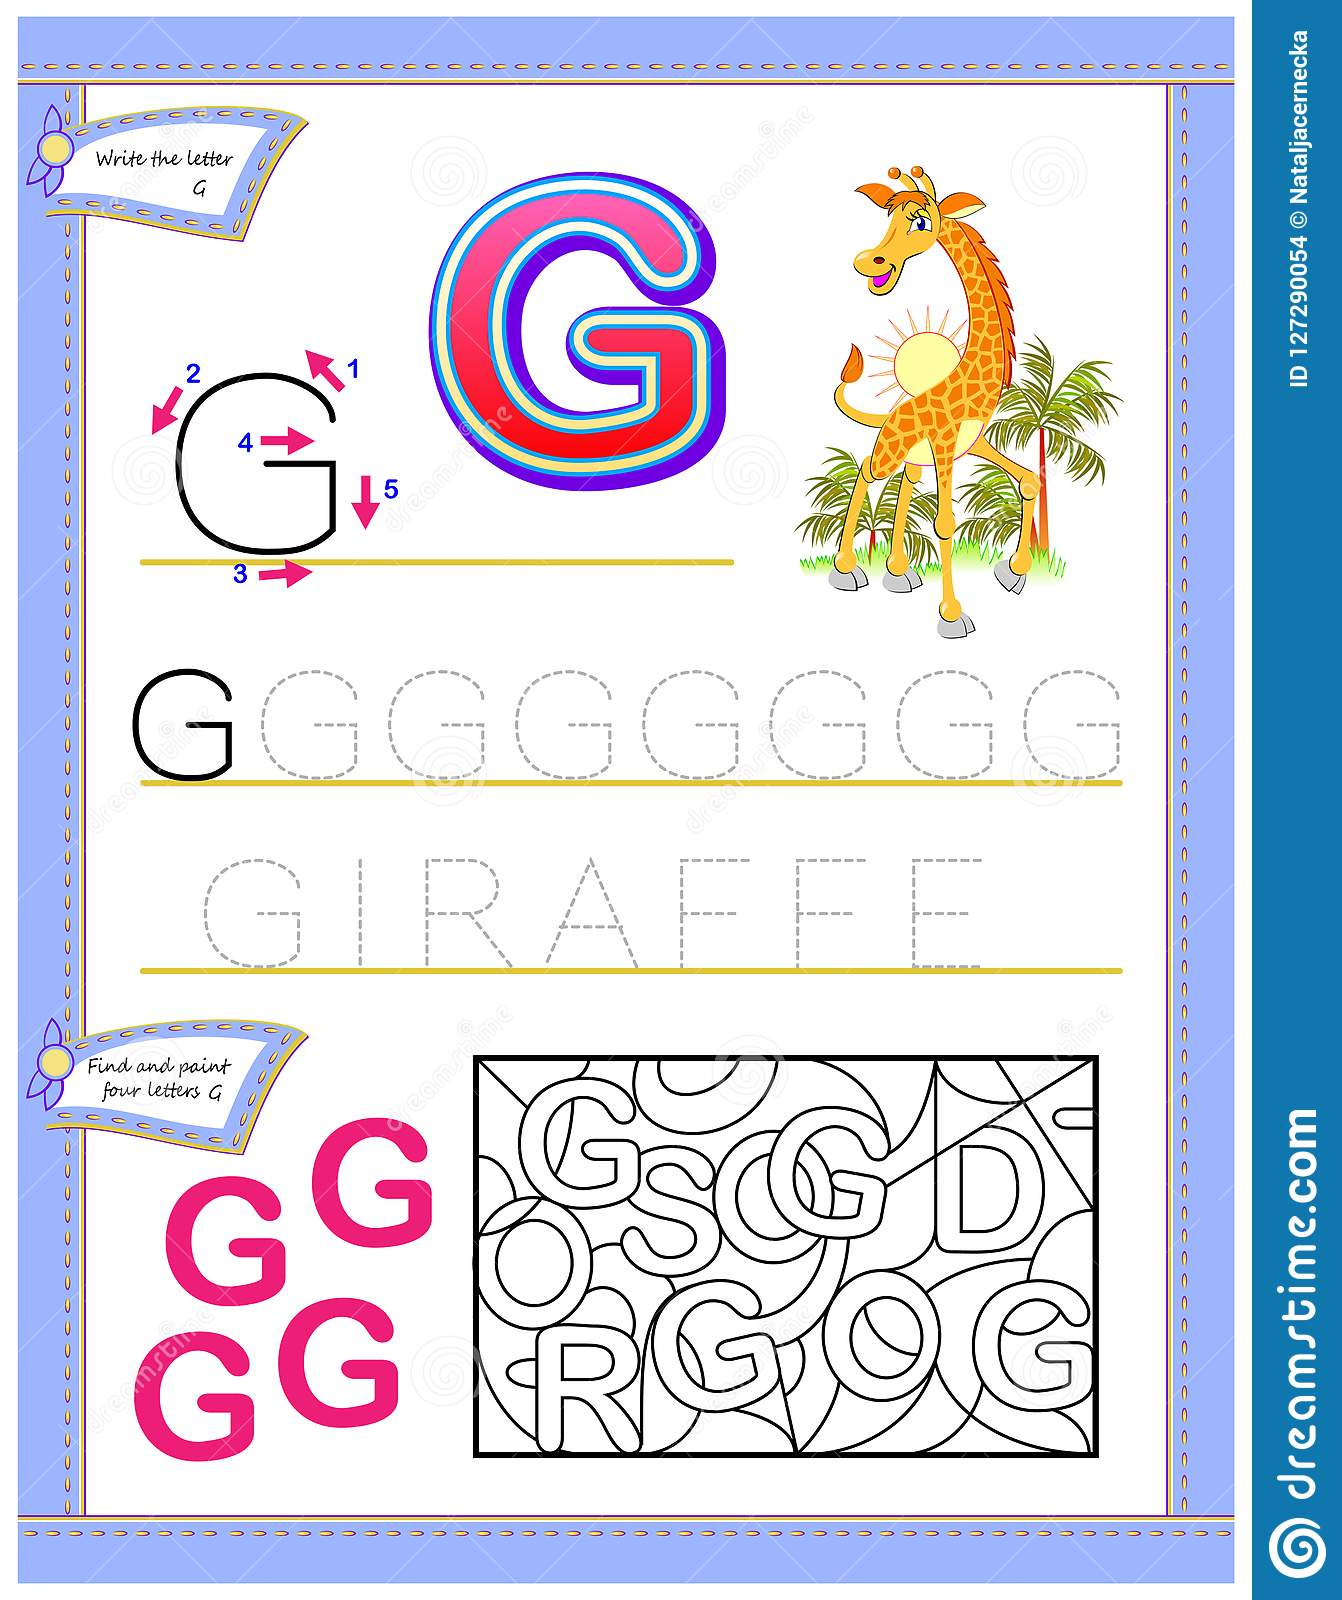 Worksheet For Kids With Letter G For Study English